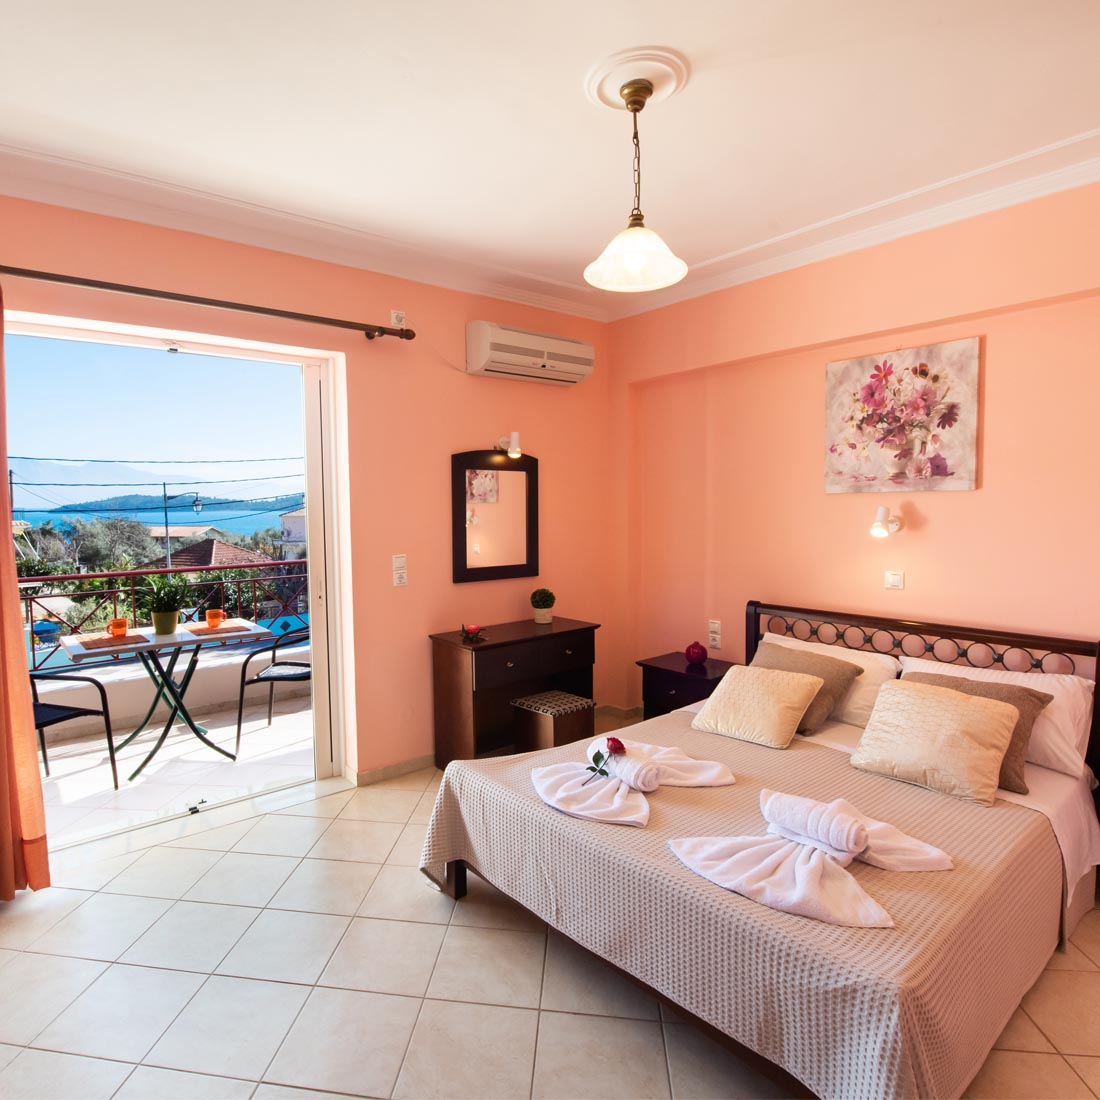 Sunrise Studios Lefkada Apartment Feature Image